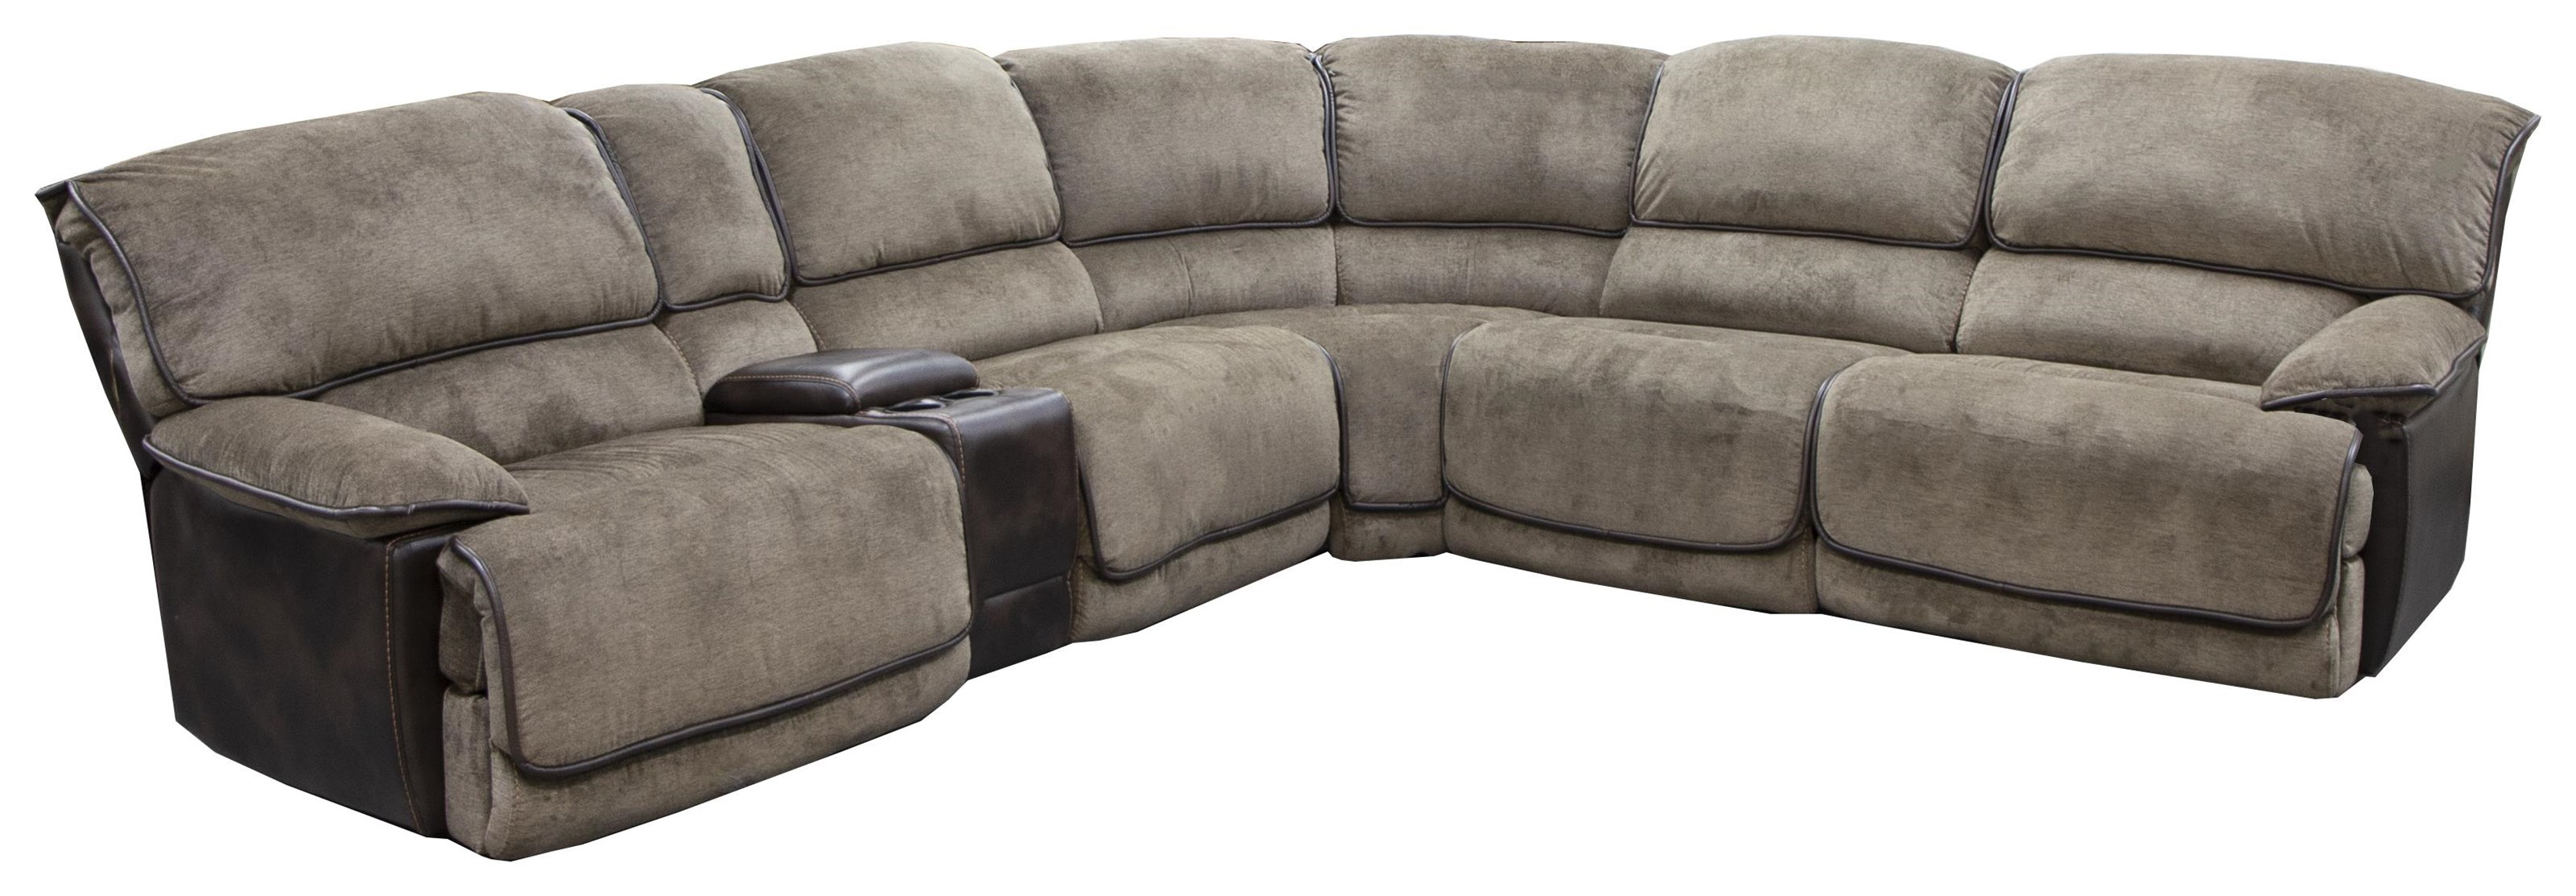 Clyde Clyde Power Sectional Sofa at Morris Home